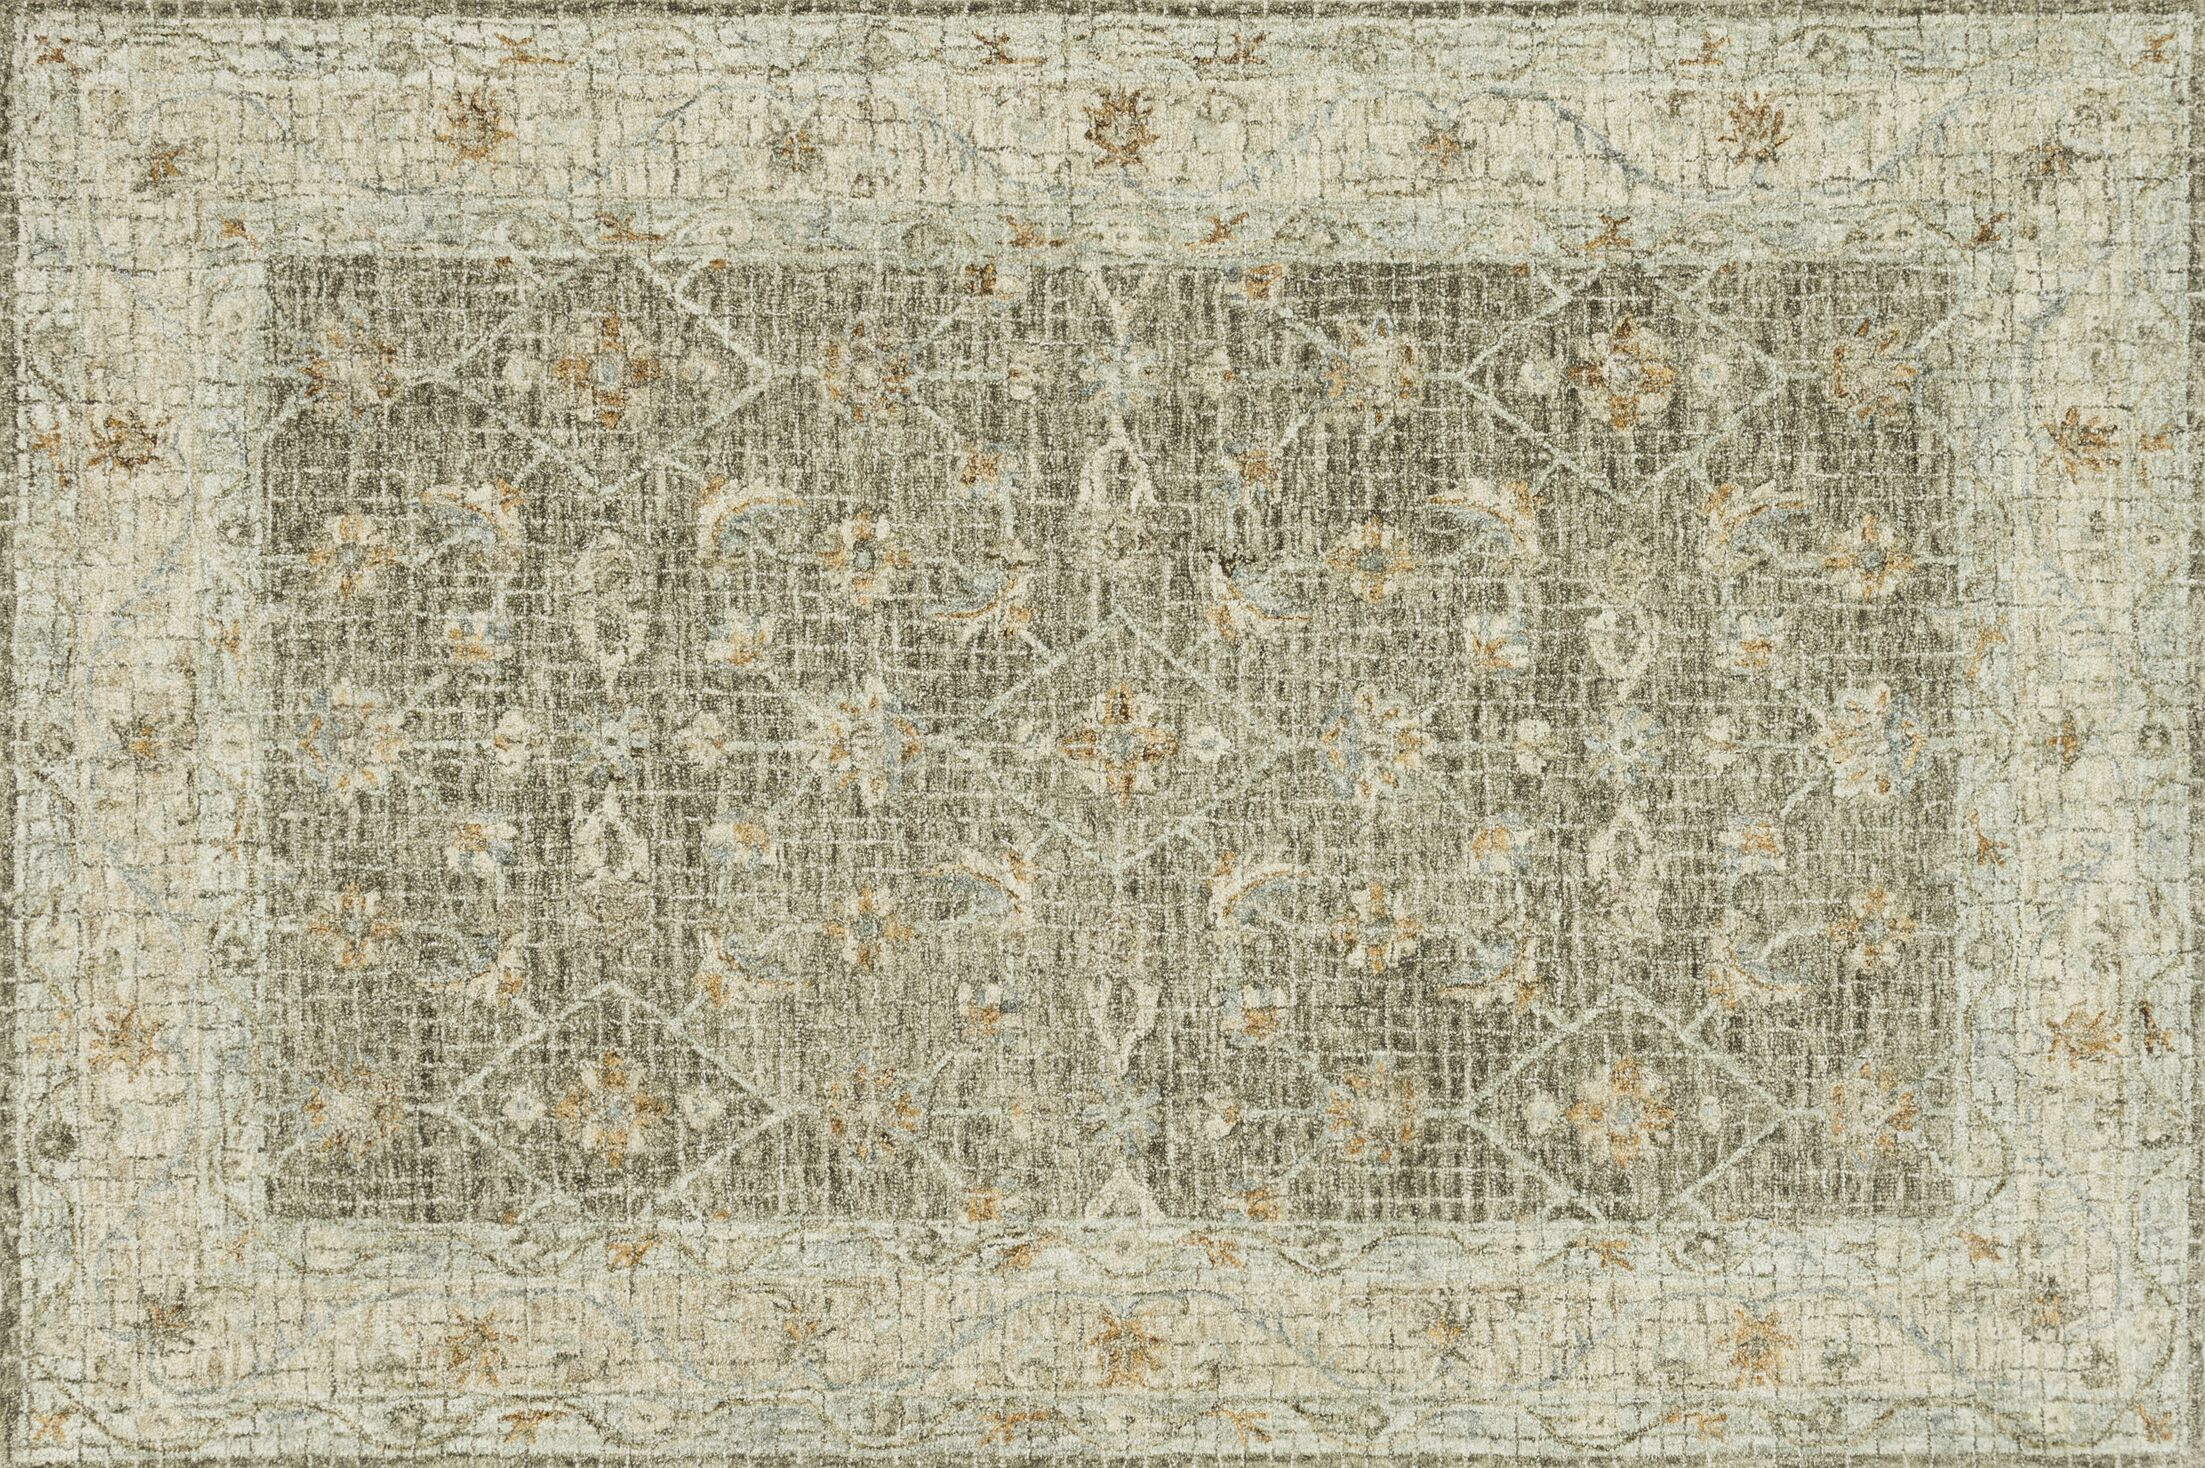 Fitzwater Hand-Hooked Wool Taupe Area Rug Rug Size: Rectangle 12' x 15'